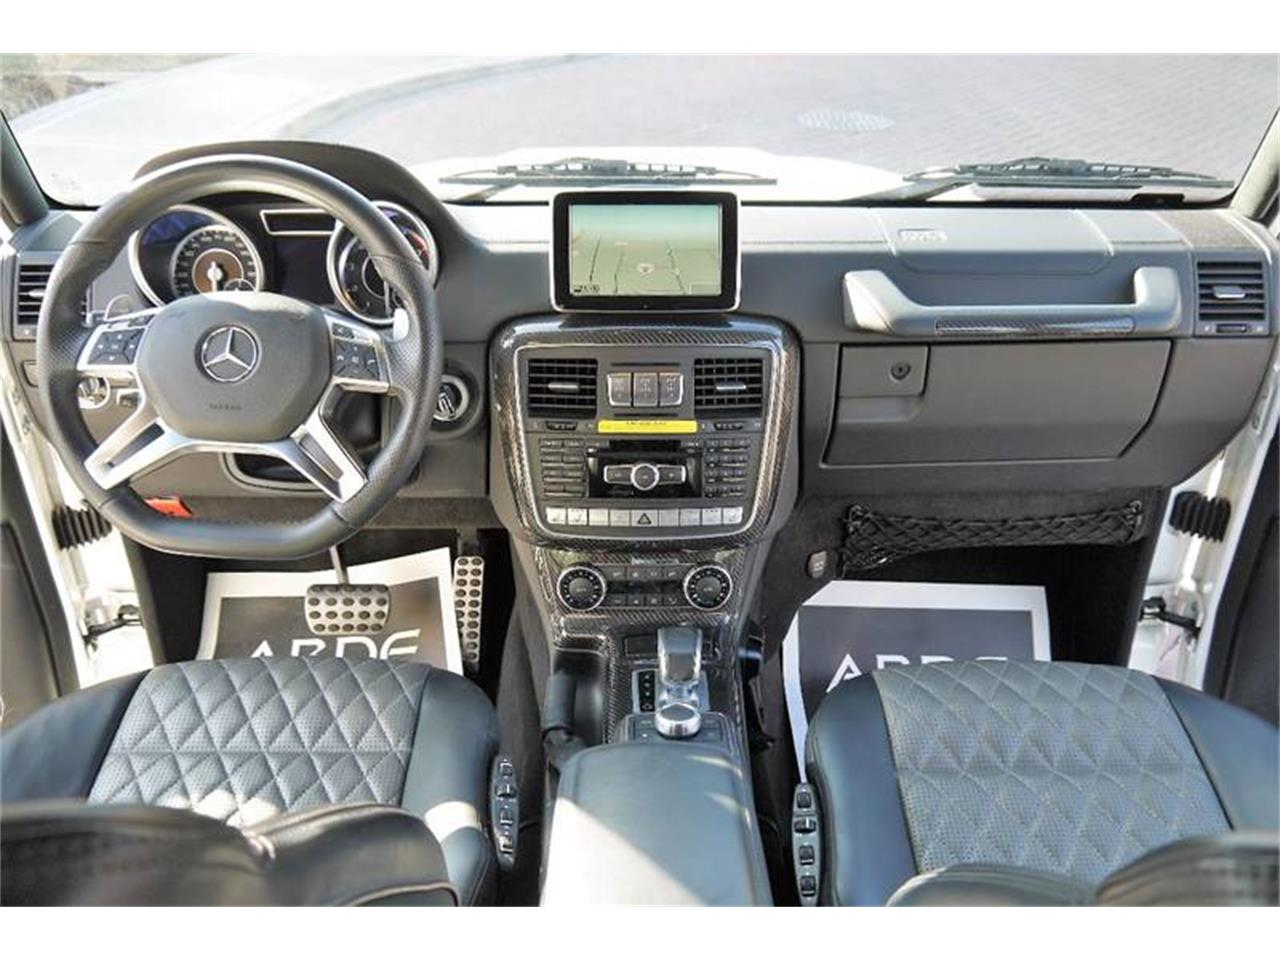 Large Picture of '15 Mercedes-Benz G-Class located in Brentwood Tennessee Auction Vehicle Offered by Arde Motorcars - MOCR